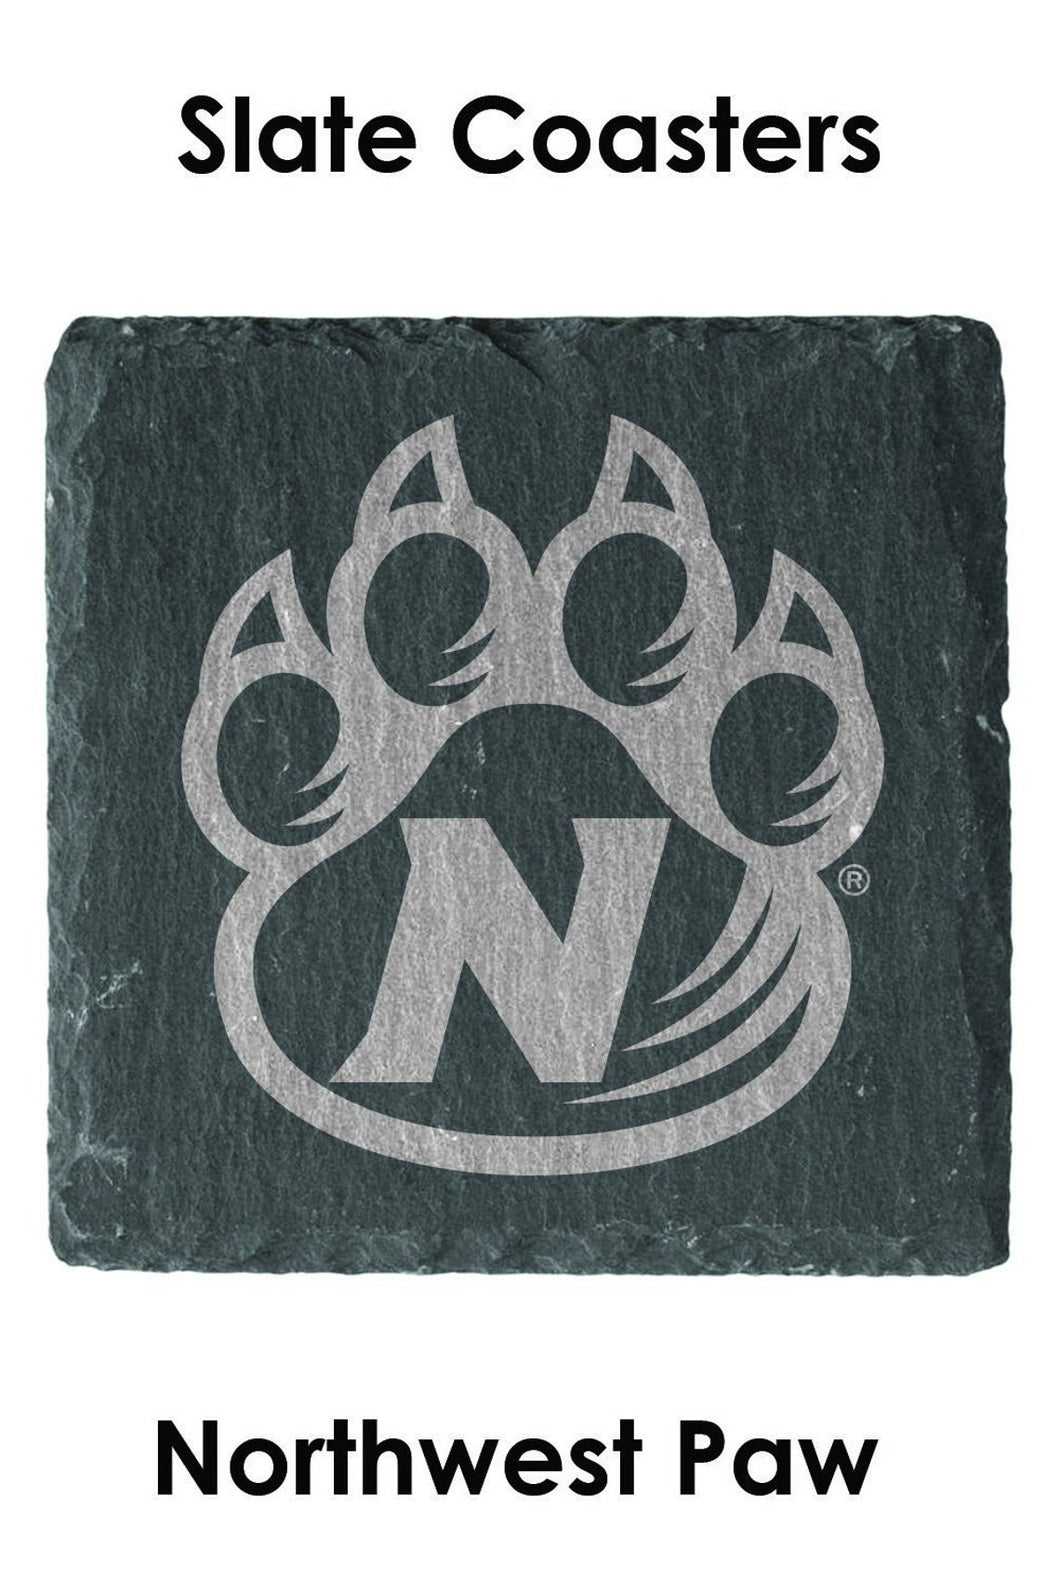 Northwest Paw Set of 4 Slate Coasters